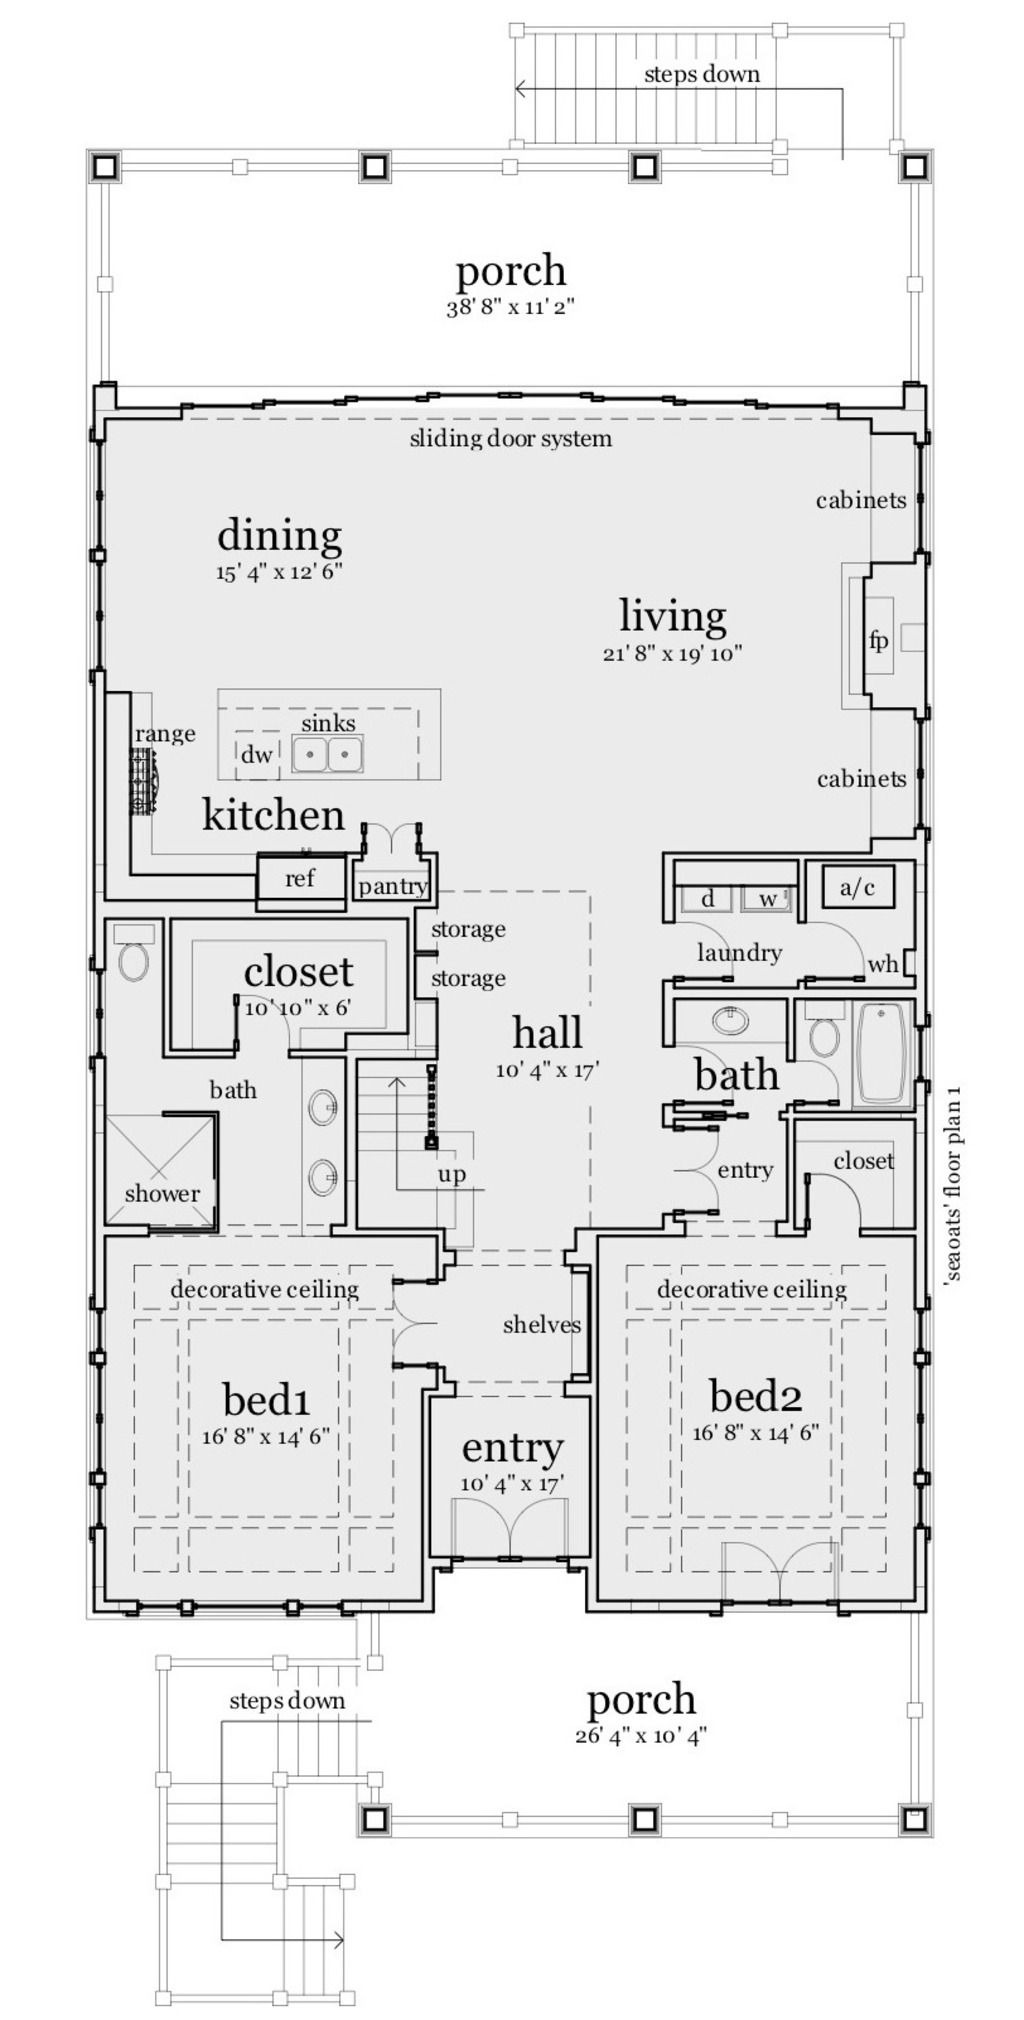 Small Lot Beach House Plans Lovely House Plan 028 Narrow Lot Plan 2 621 Square Feet 3